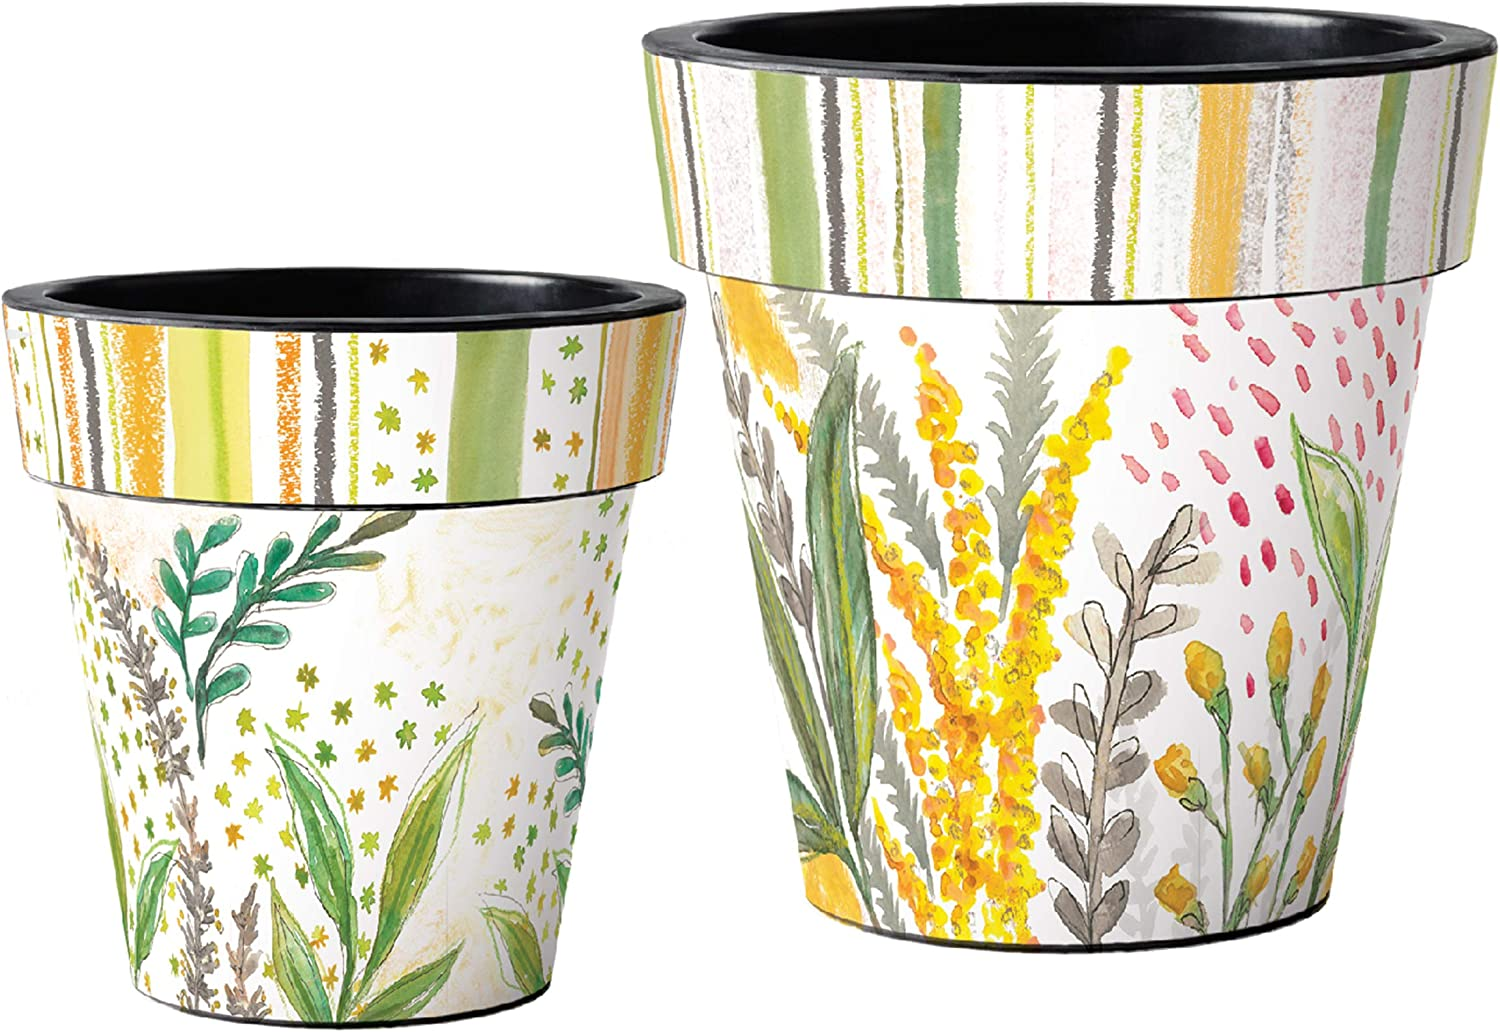 Studio M Fresh Flower Art Planters Spring Floral Decorative Pots, Fade-Resistant Container for Outdoors or Indoors - Set of 2, Printed in The USA, 12 and 15 Inch Diameter